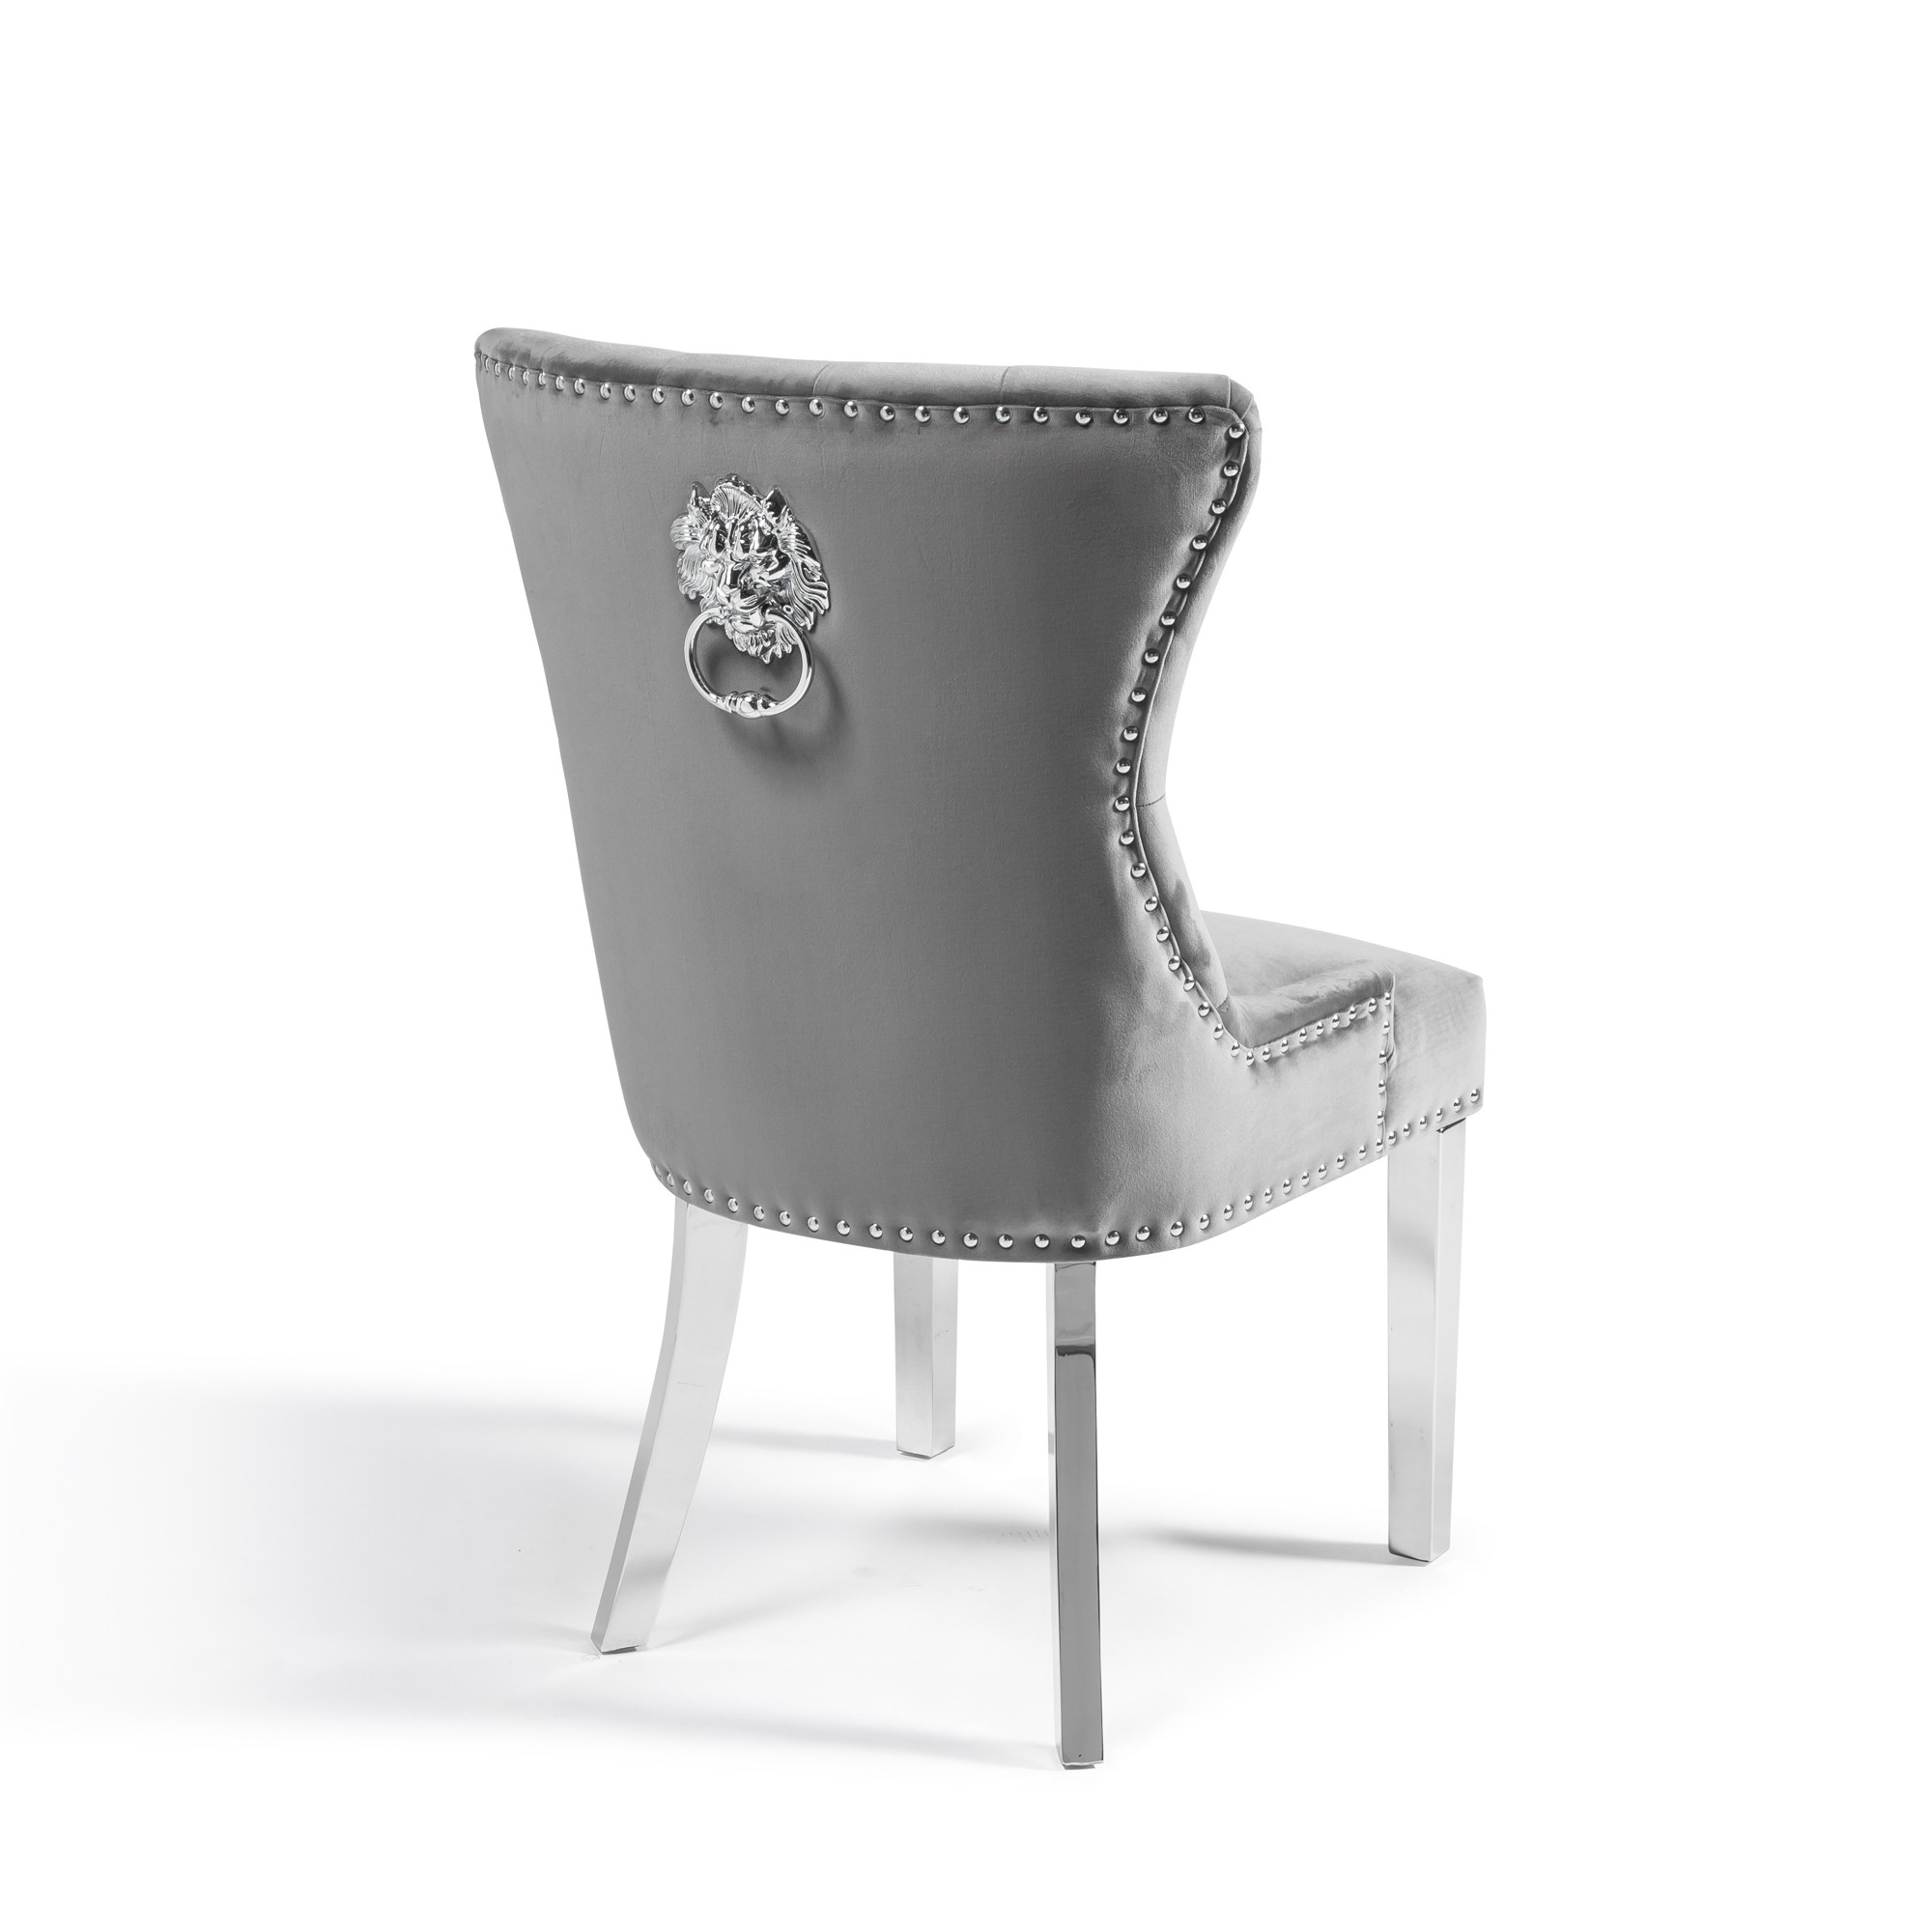 Tremendous Knightsbridge Grey Brushed Velvet Dining Chair With Polished Stainless Steel Legs With Lions Head Knocker Gamerscity Chair Design For Home Gamerscityorg